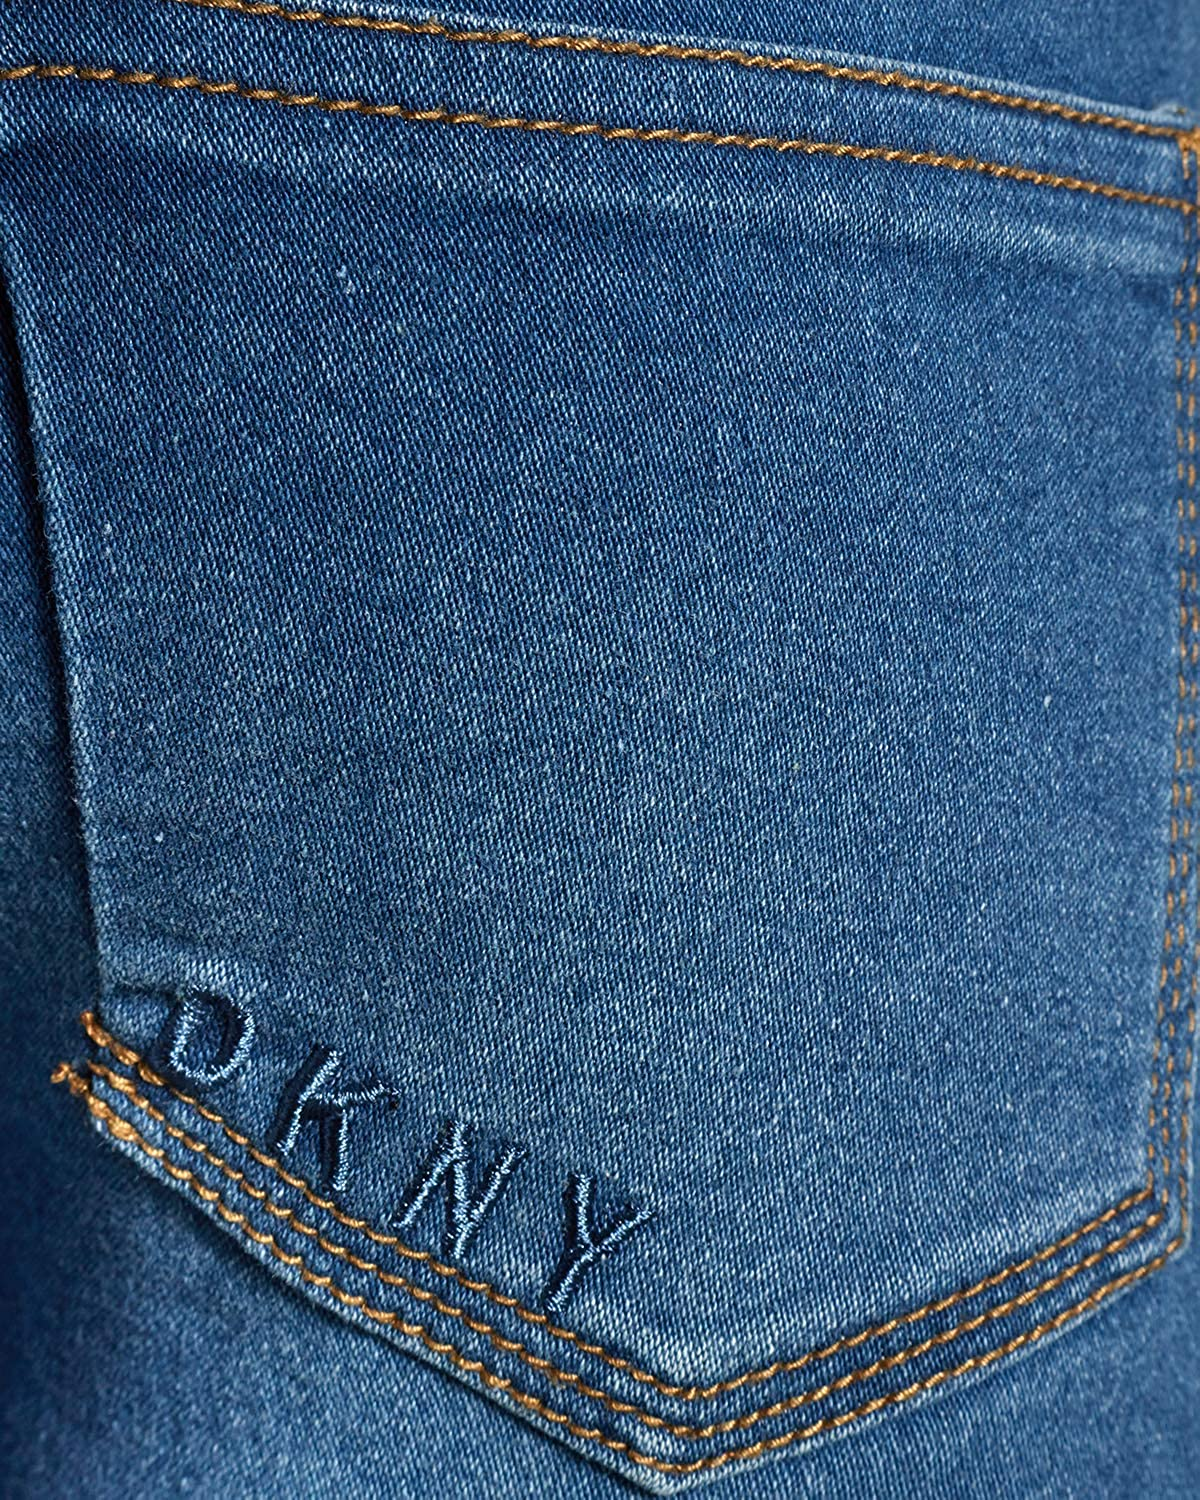 DKNY Girls Super Soft Stretch Skinny Denim Jeans Bleeker Size 8